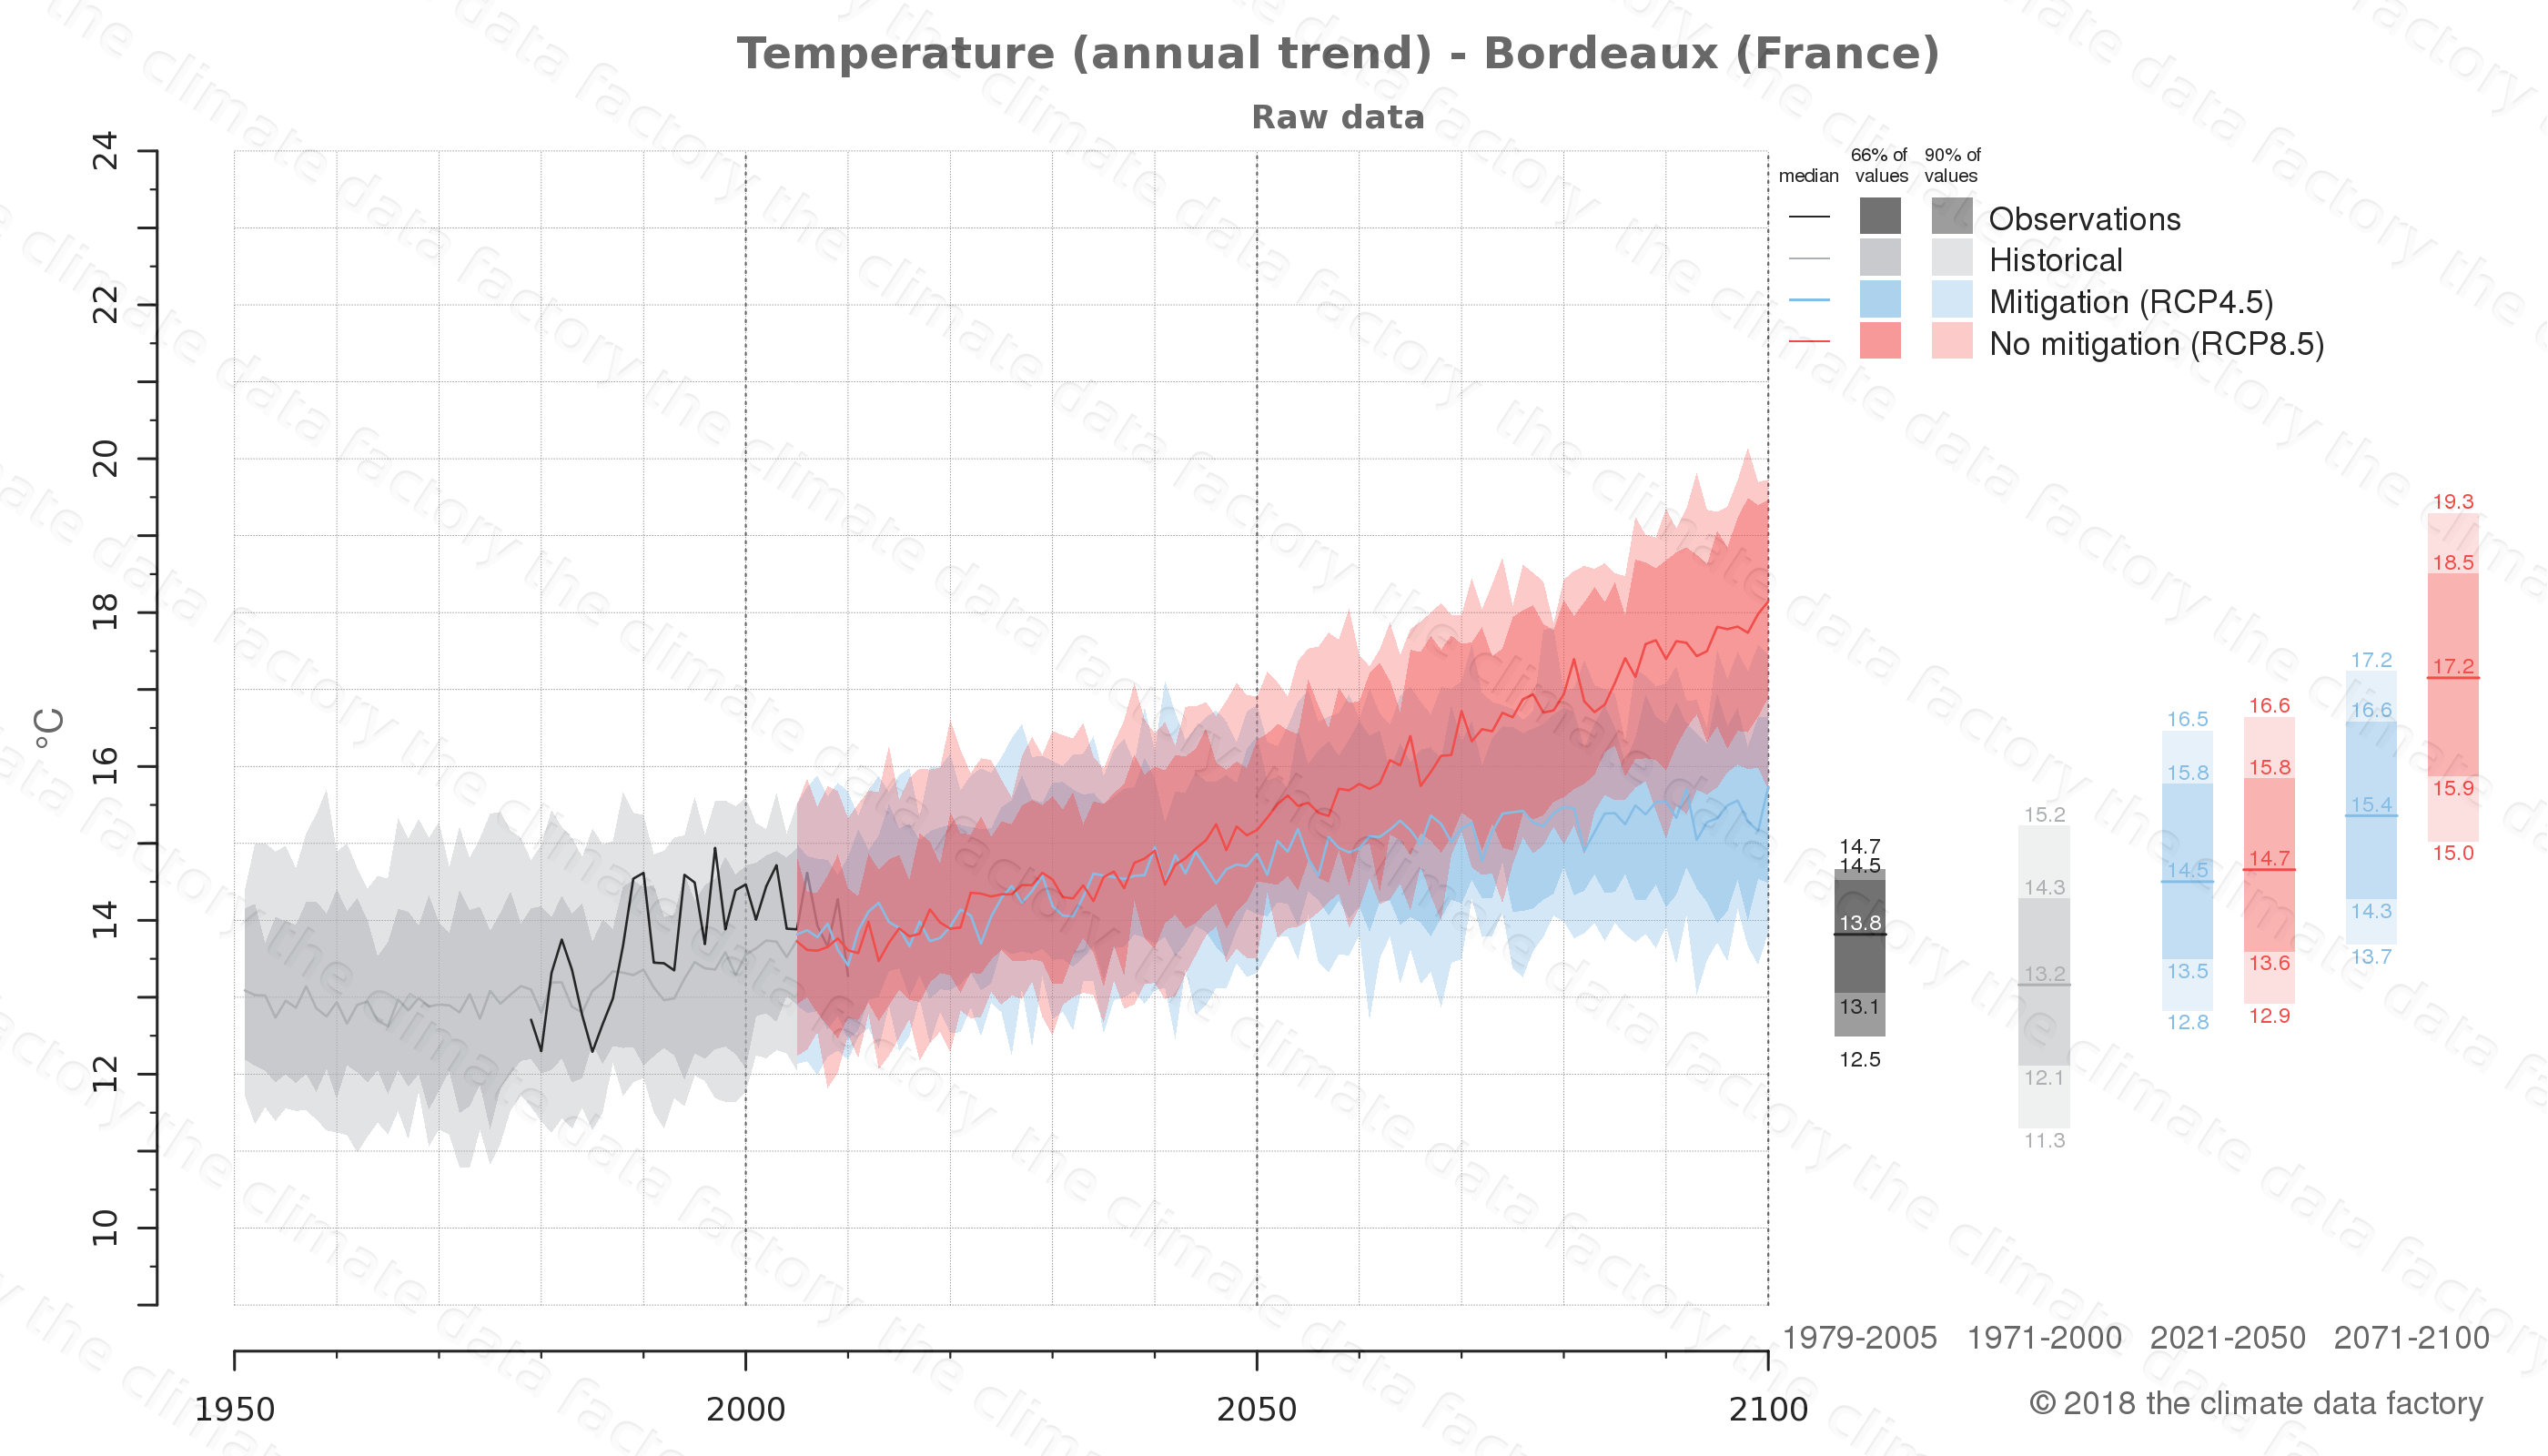 climate change data policy adaptation climate graph city data temperature bordeaux france